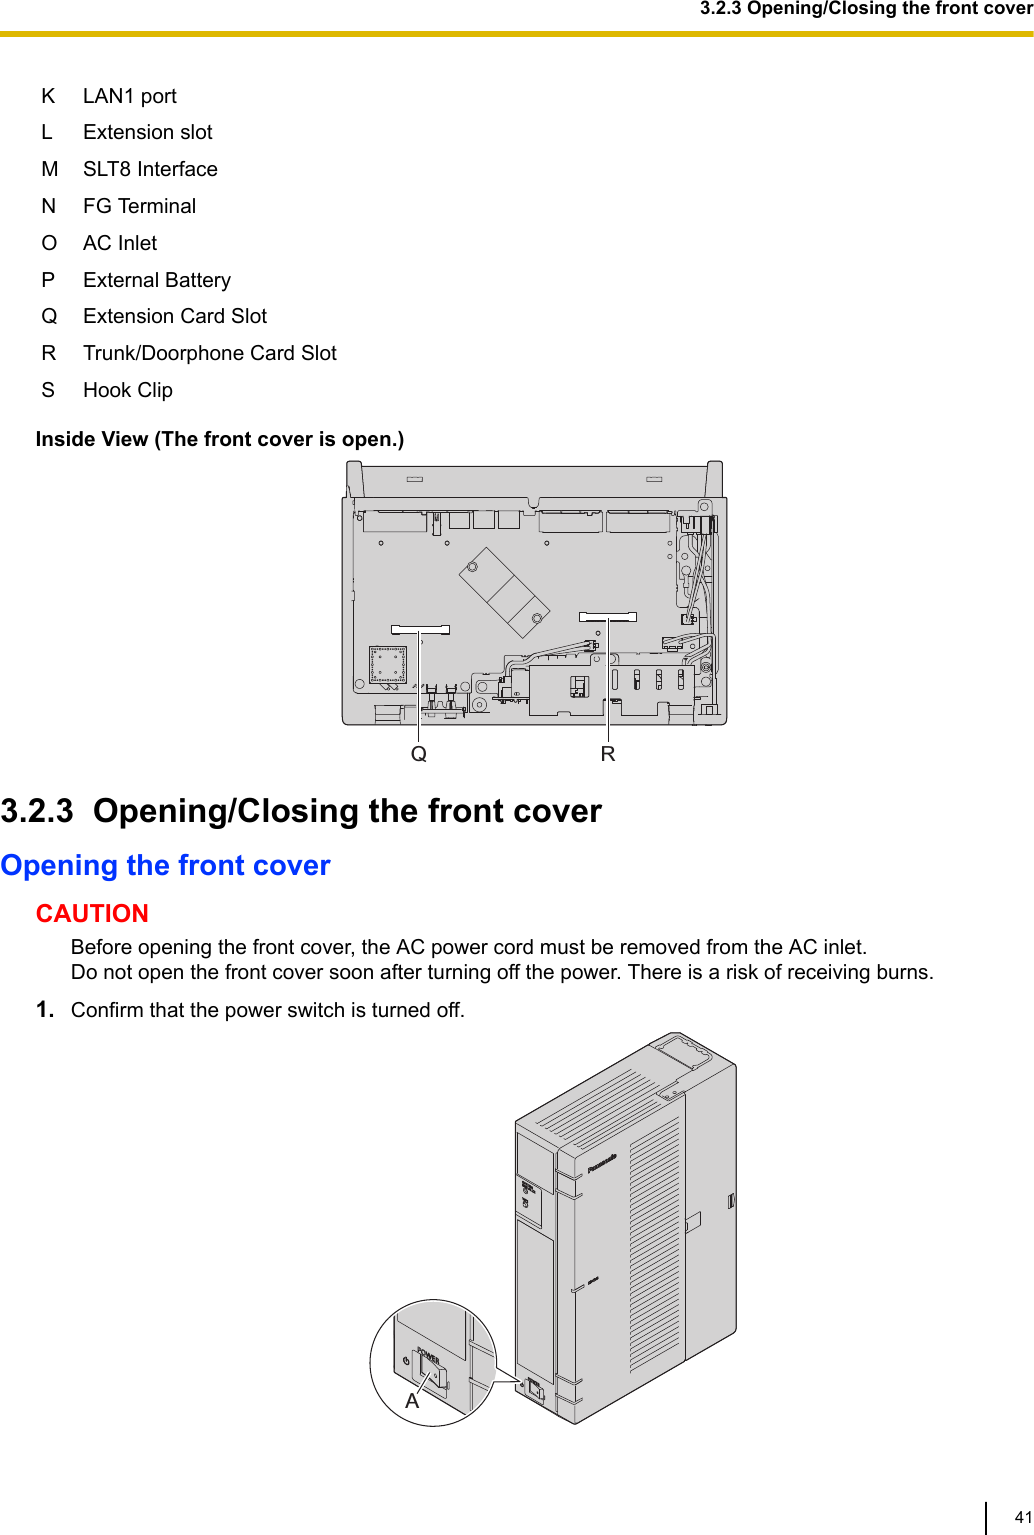 panasonic kx hts32 user manual